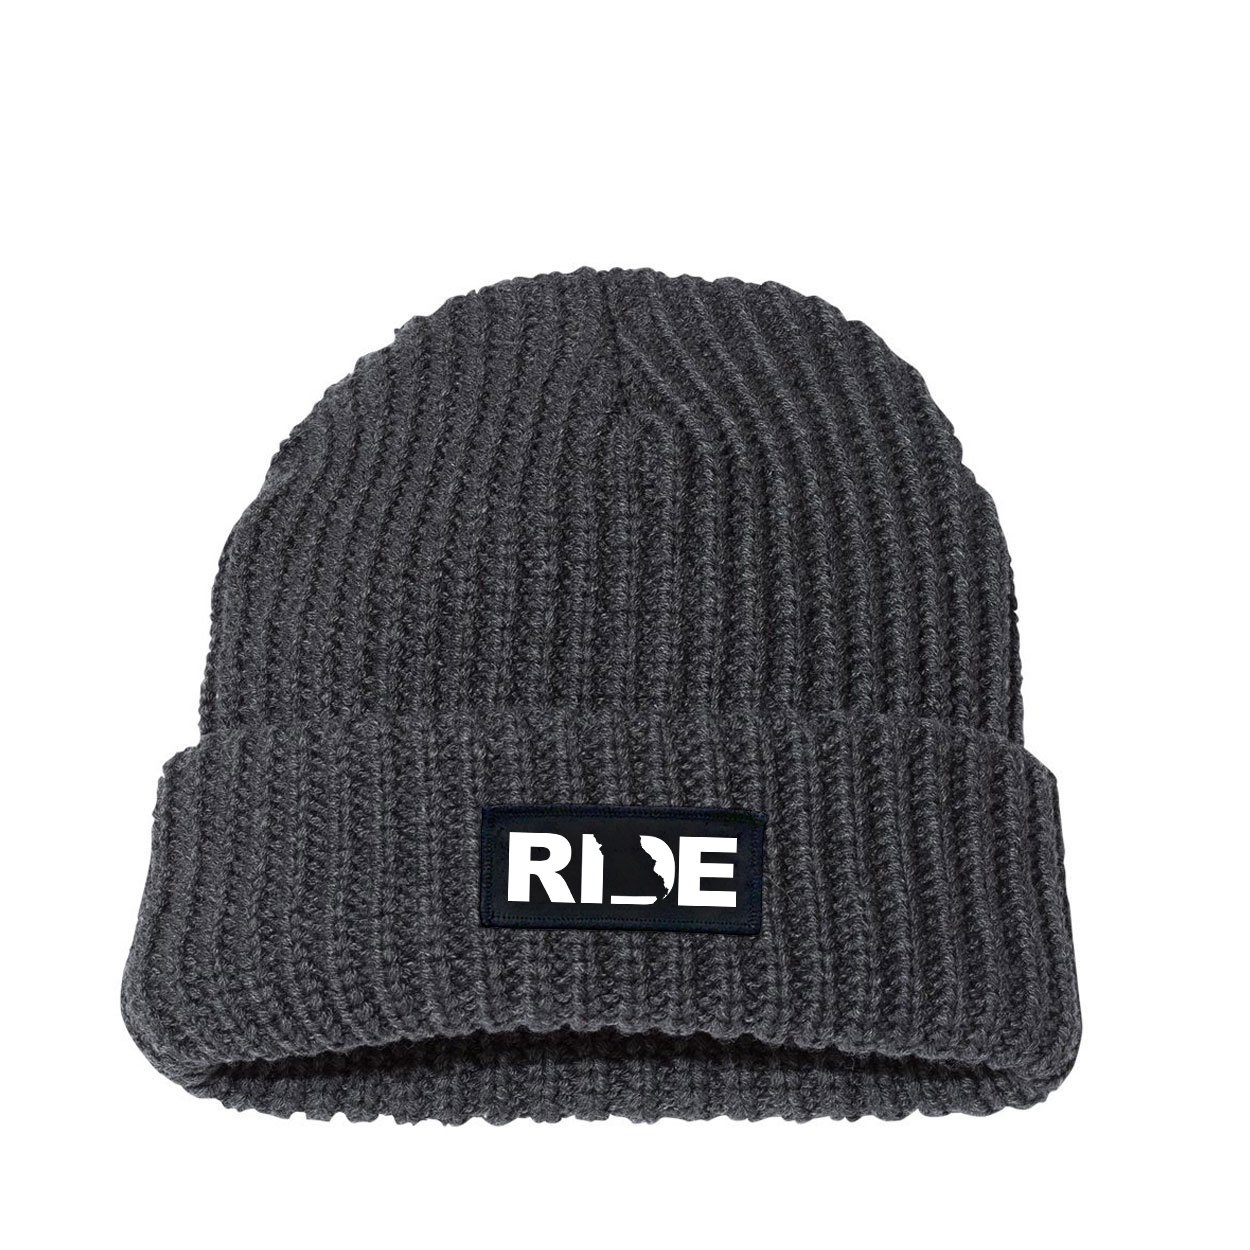 Ride Missouri Night Out Woven Patch Roll Up Jumbo Chunky Knit Beanie Charcoal (White Logo)